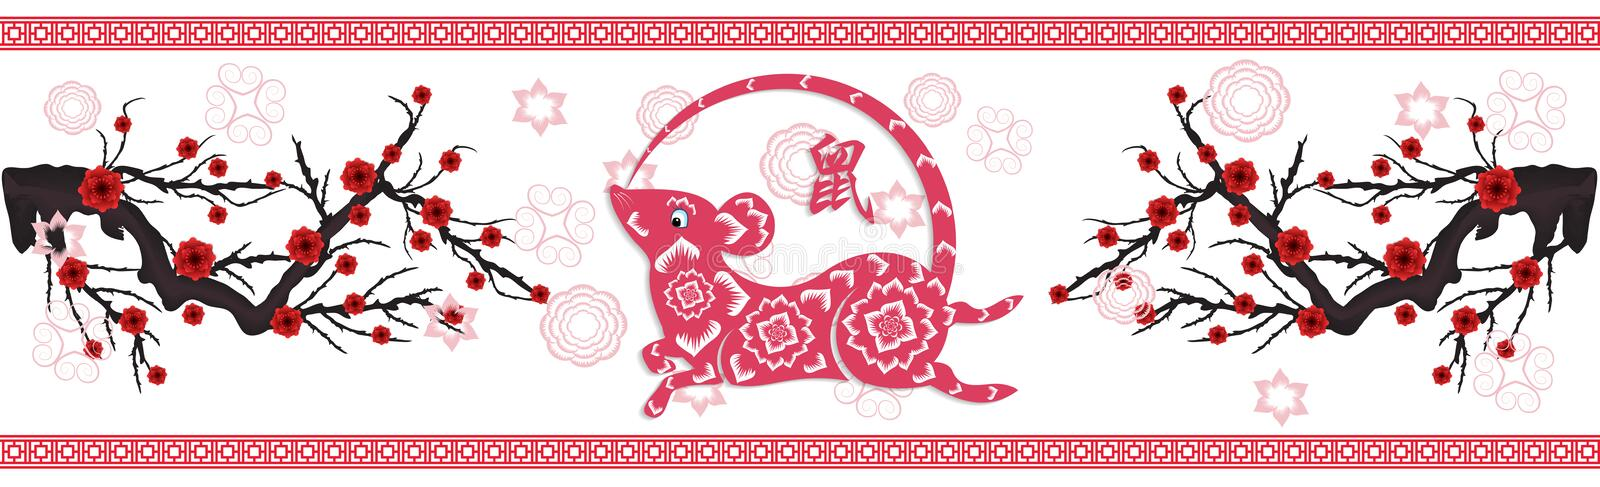 Happy New Chinese Year 2020 year of the Rat. Year of the mouse stock illustration